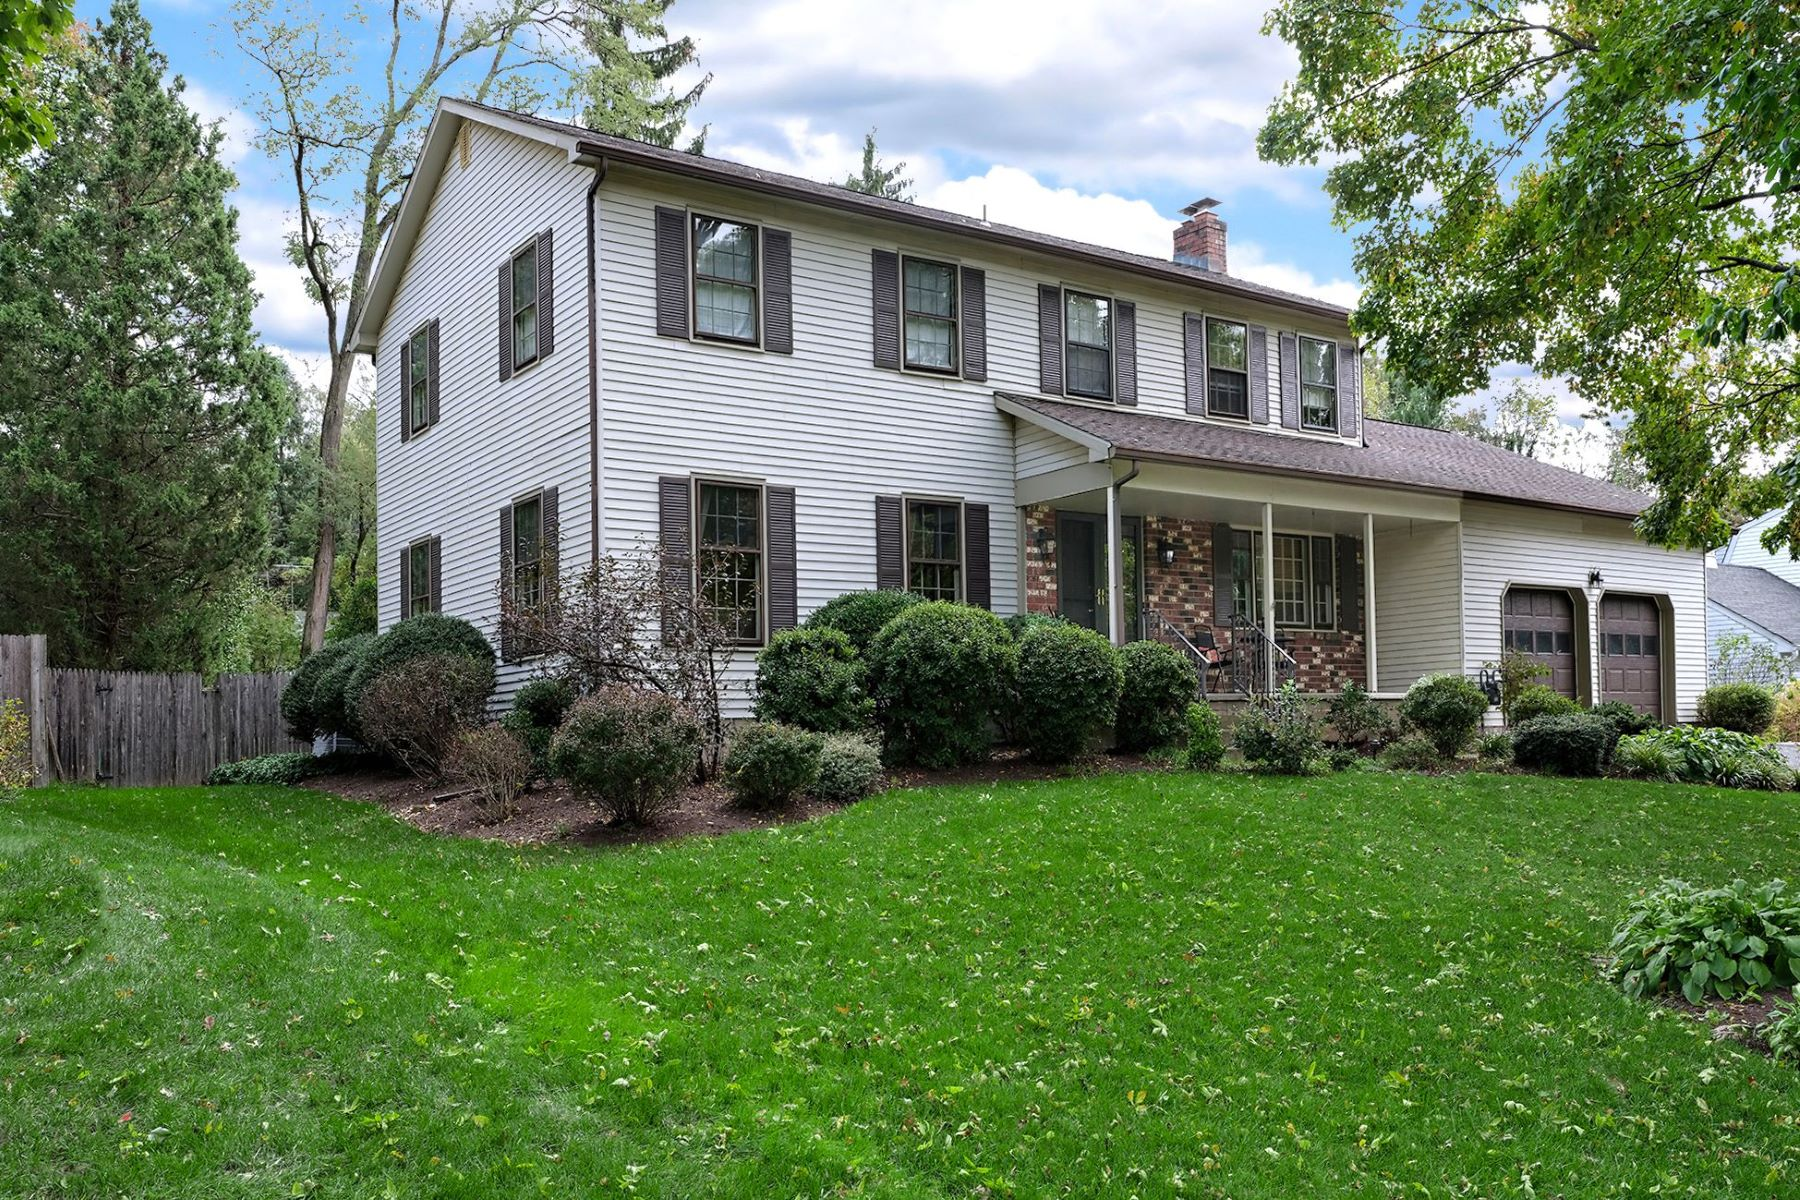 Lovely Lawrenceville Colonial Is a Perfect Fit 25 Springwood Drive, Lawrenceville, Nova Jersey 08648 Estados Unidos